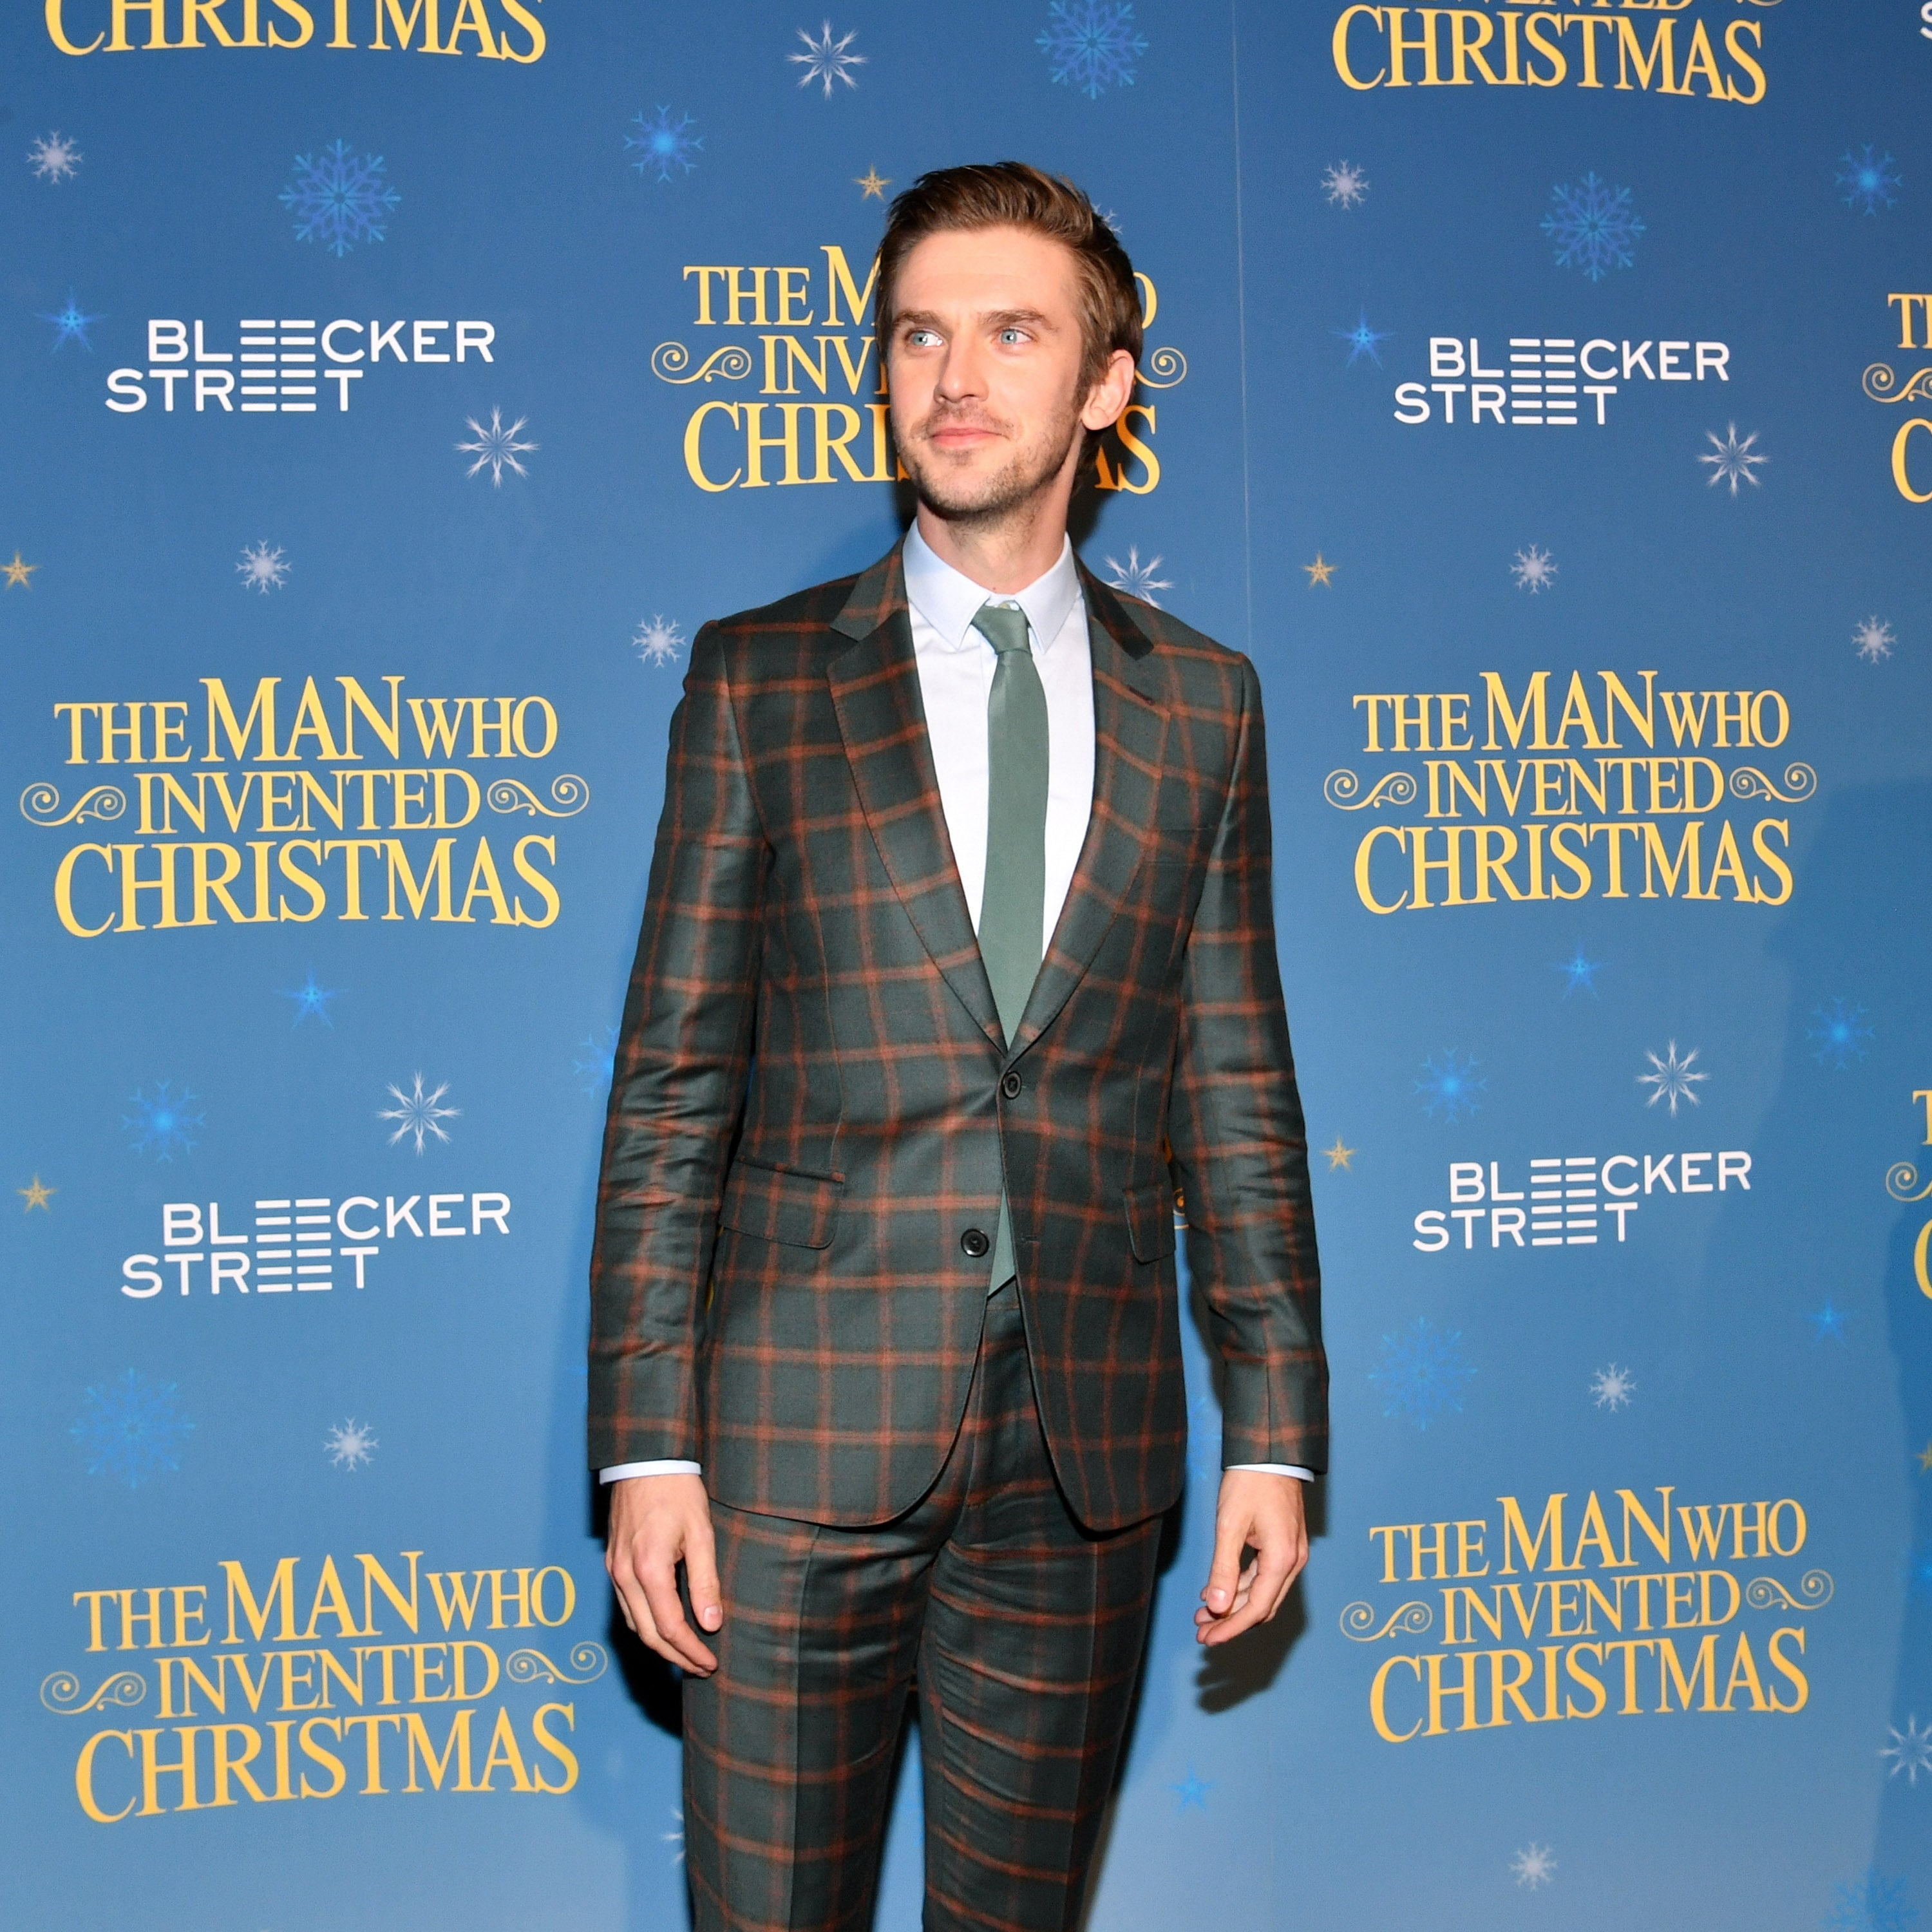 The Man Who Invented Christmas 2017.Dan Stevens On The Man Who Invented Christmas And Talk Of